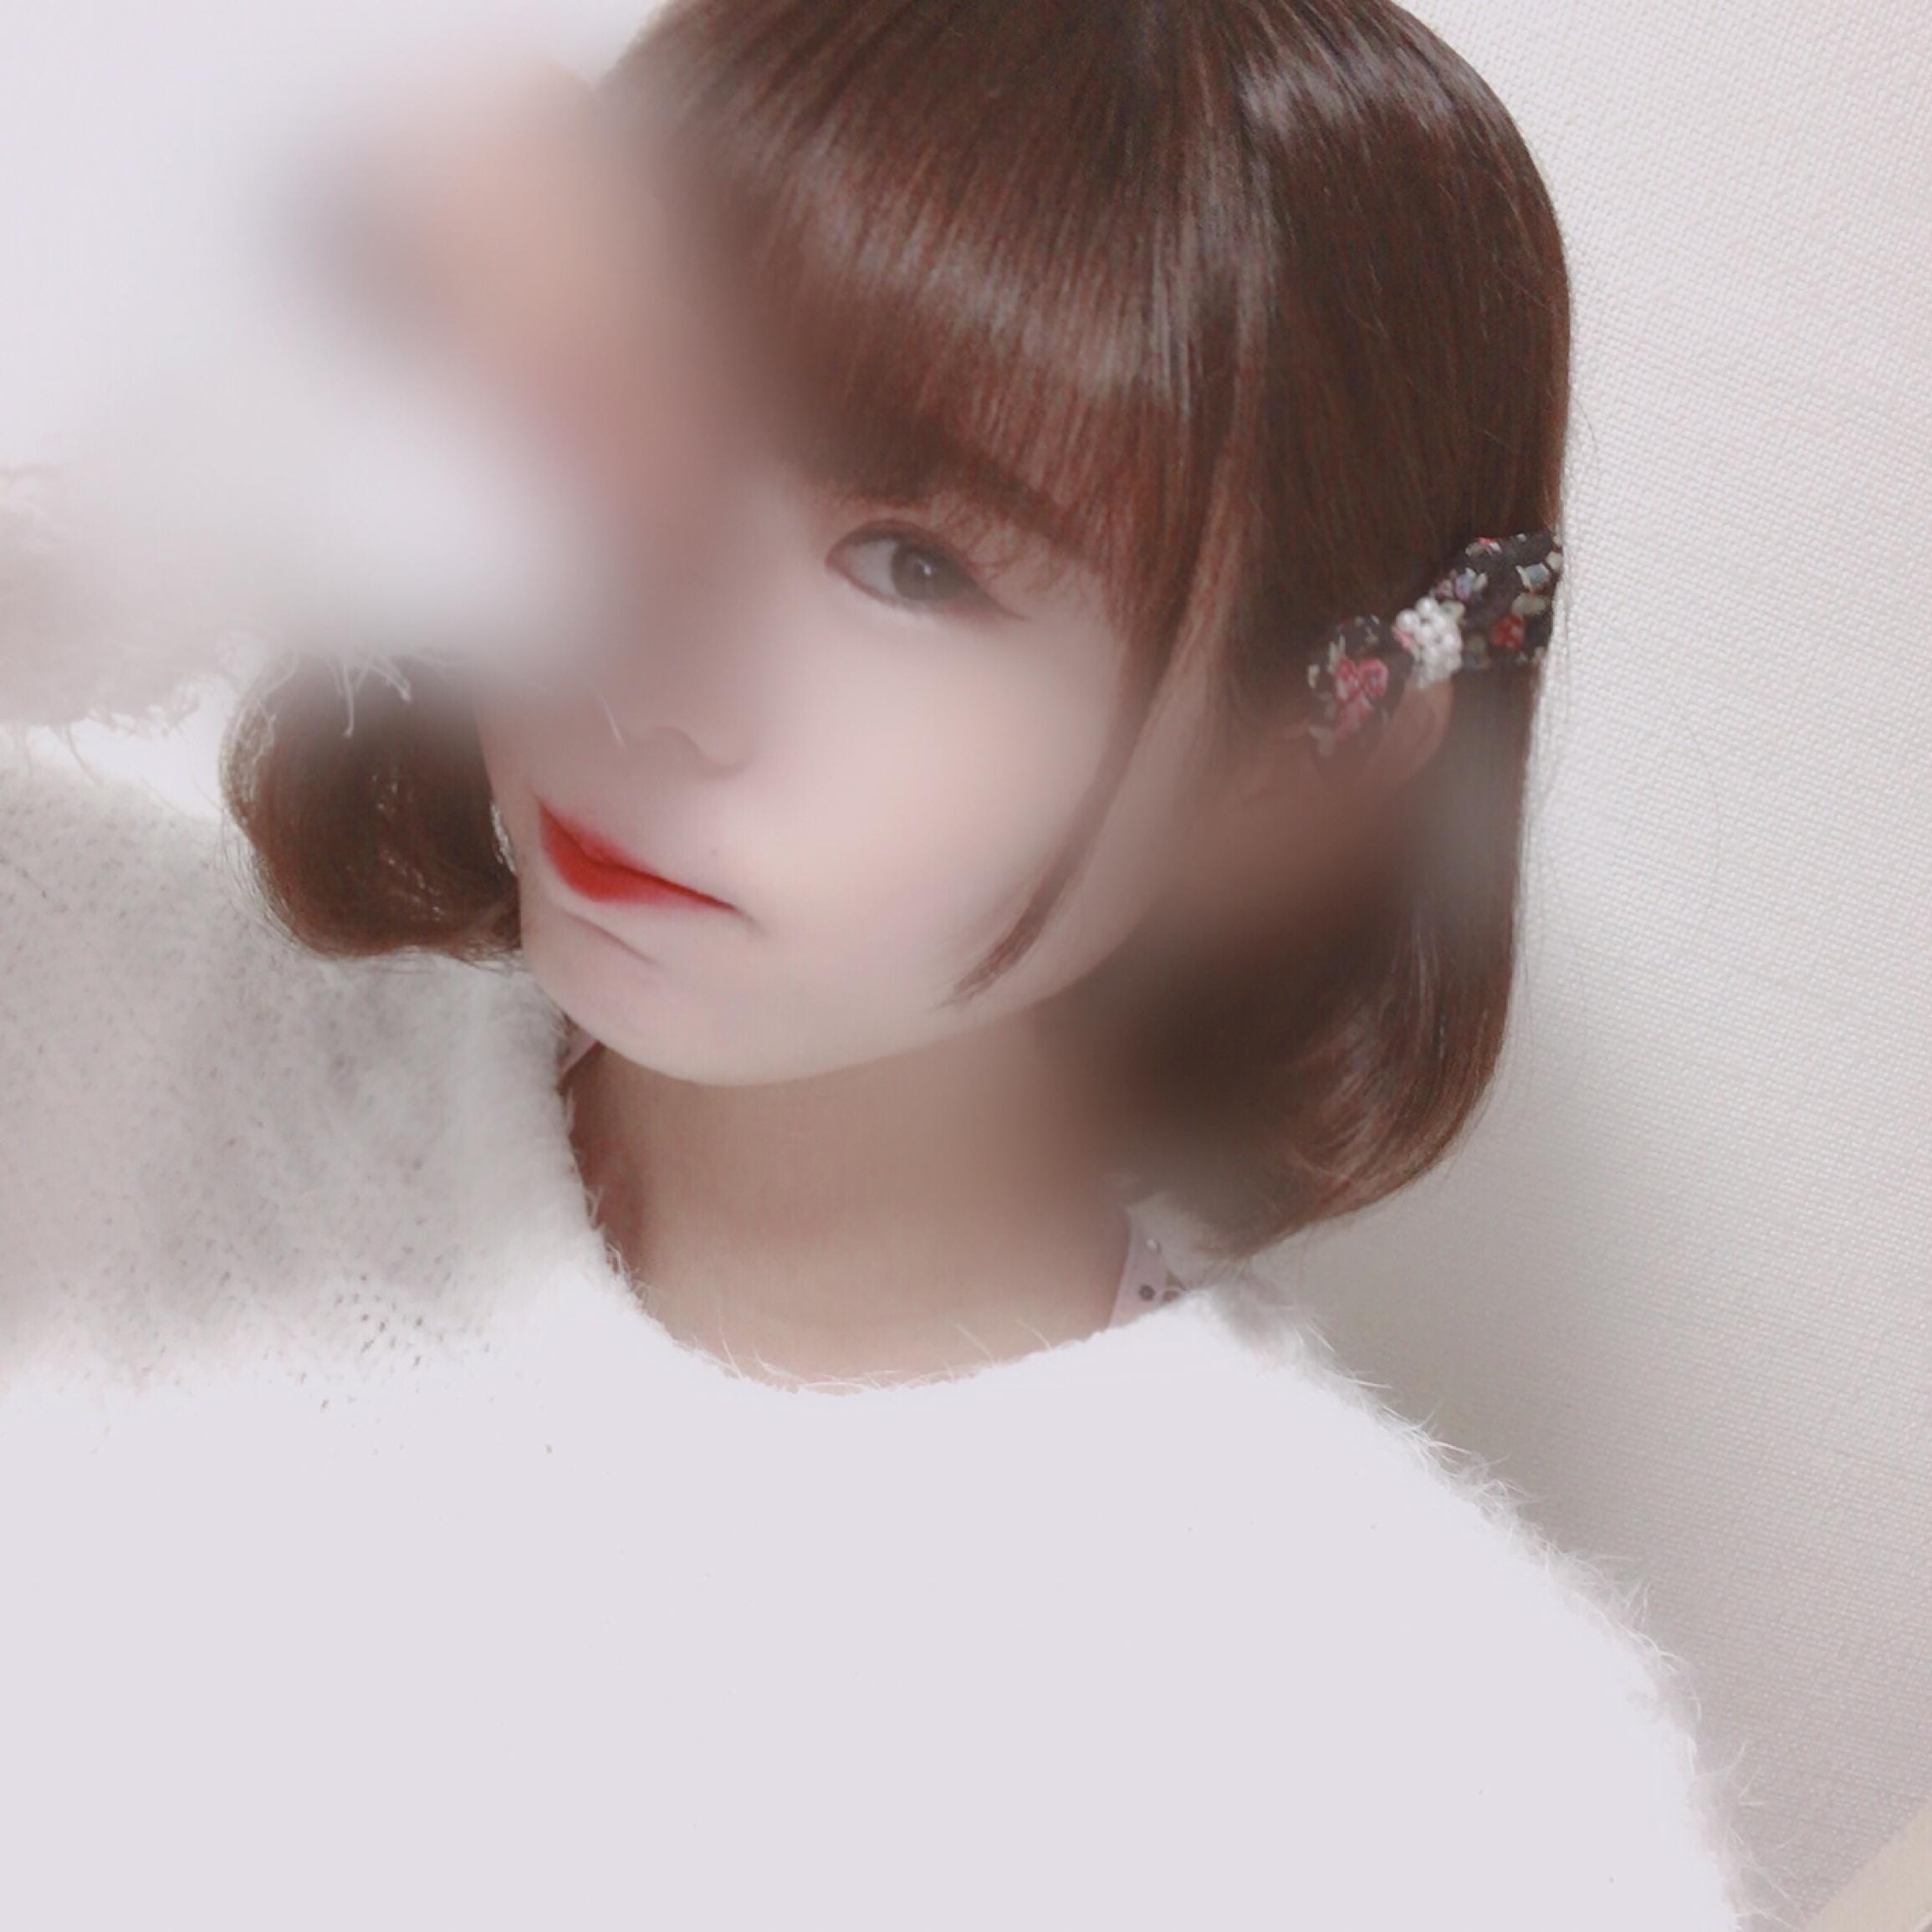 「(´TωT`)」01/19(土) 18:16 | しなのの写メ・風俗動画